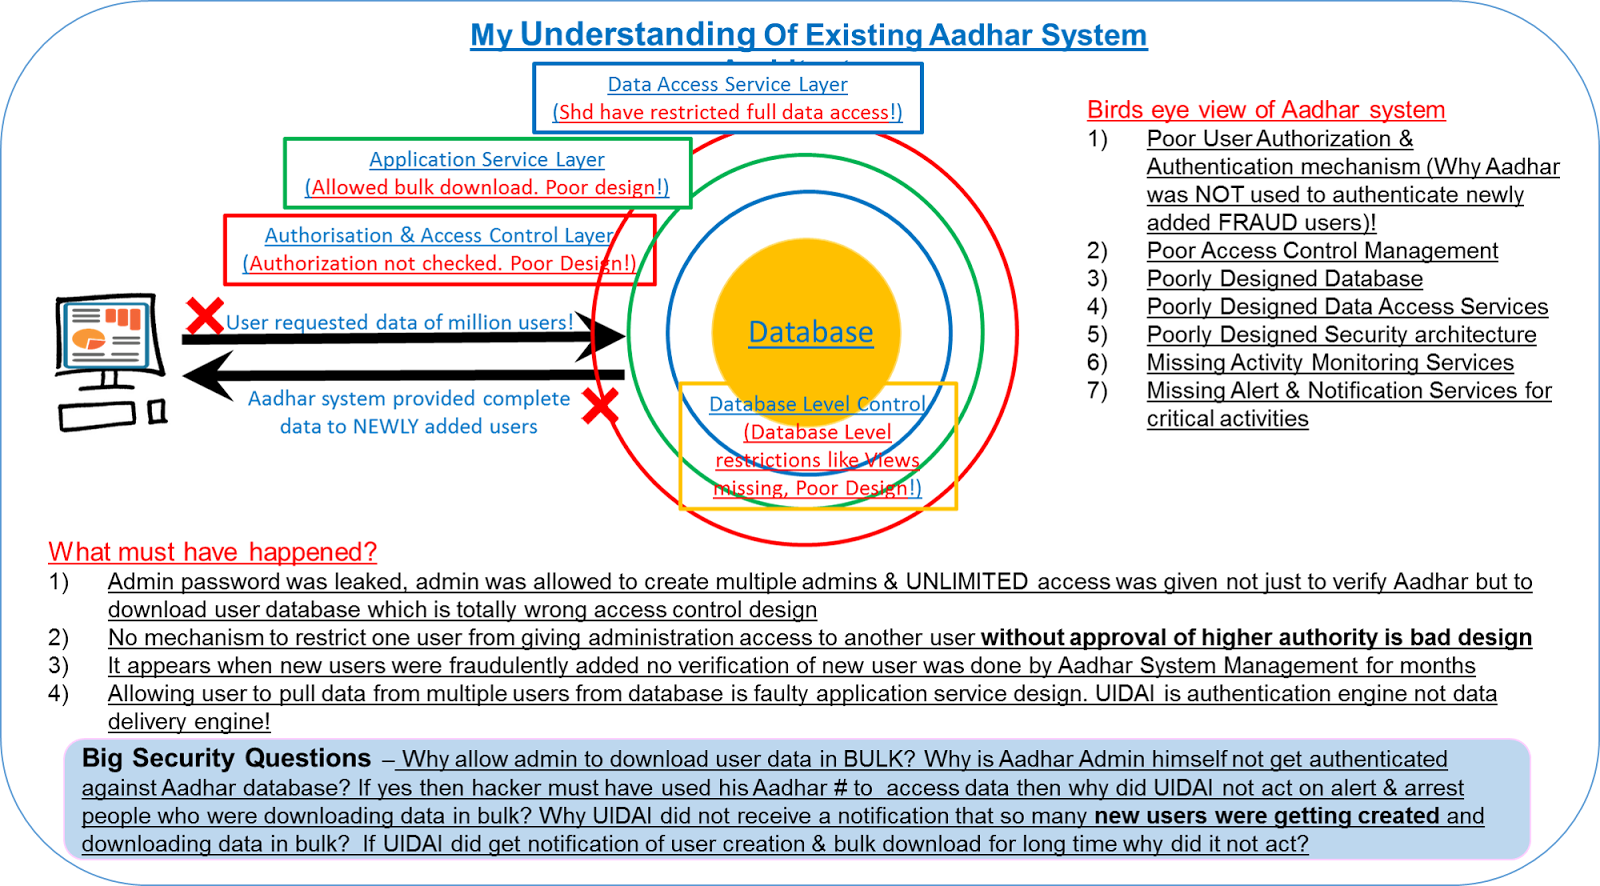 Digital Technology Architecture: Whats is wrong with Aadhar Software